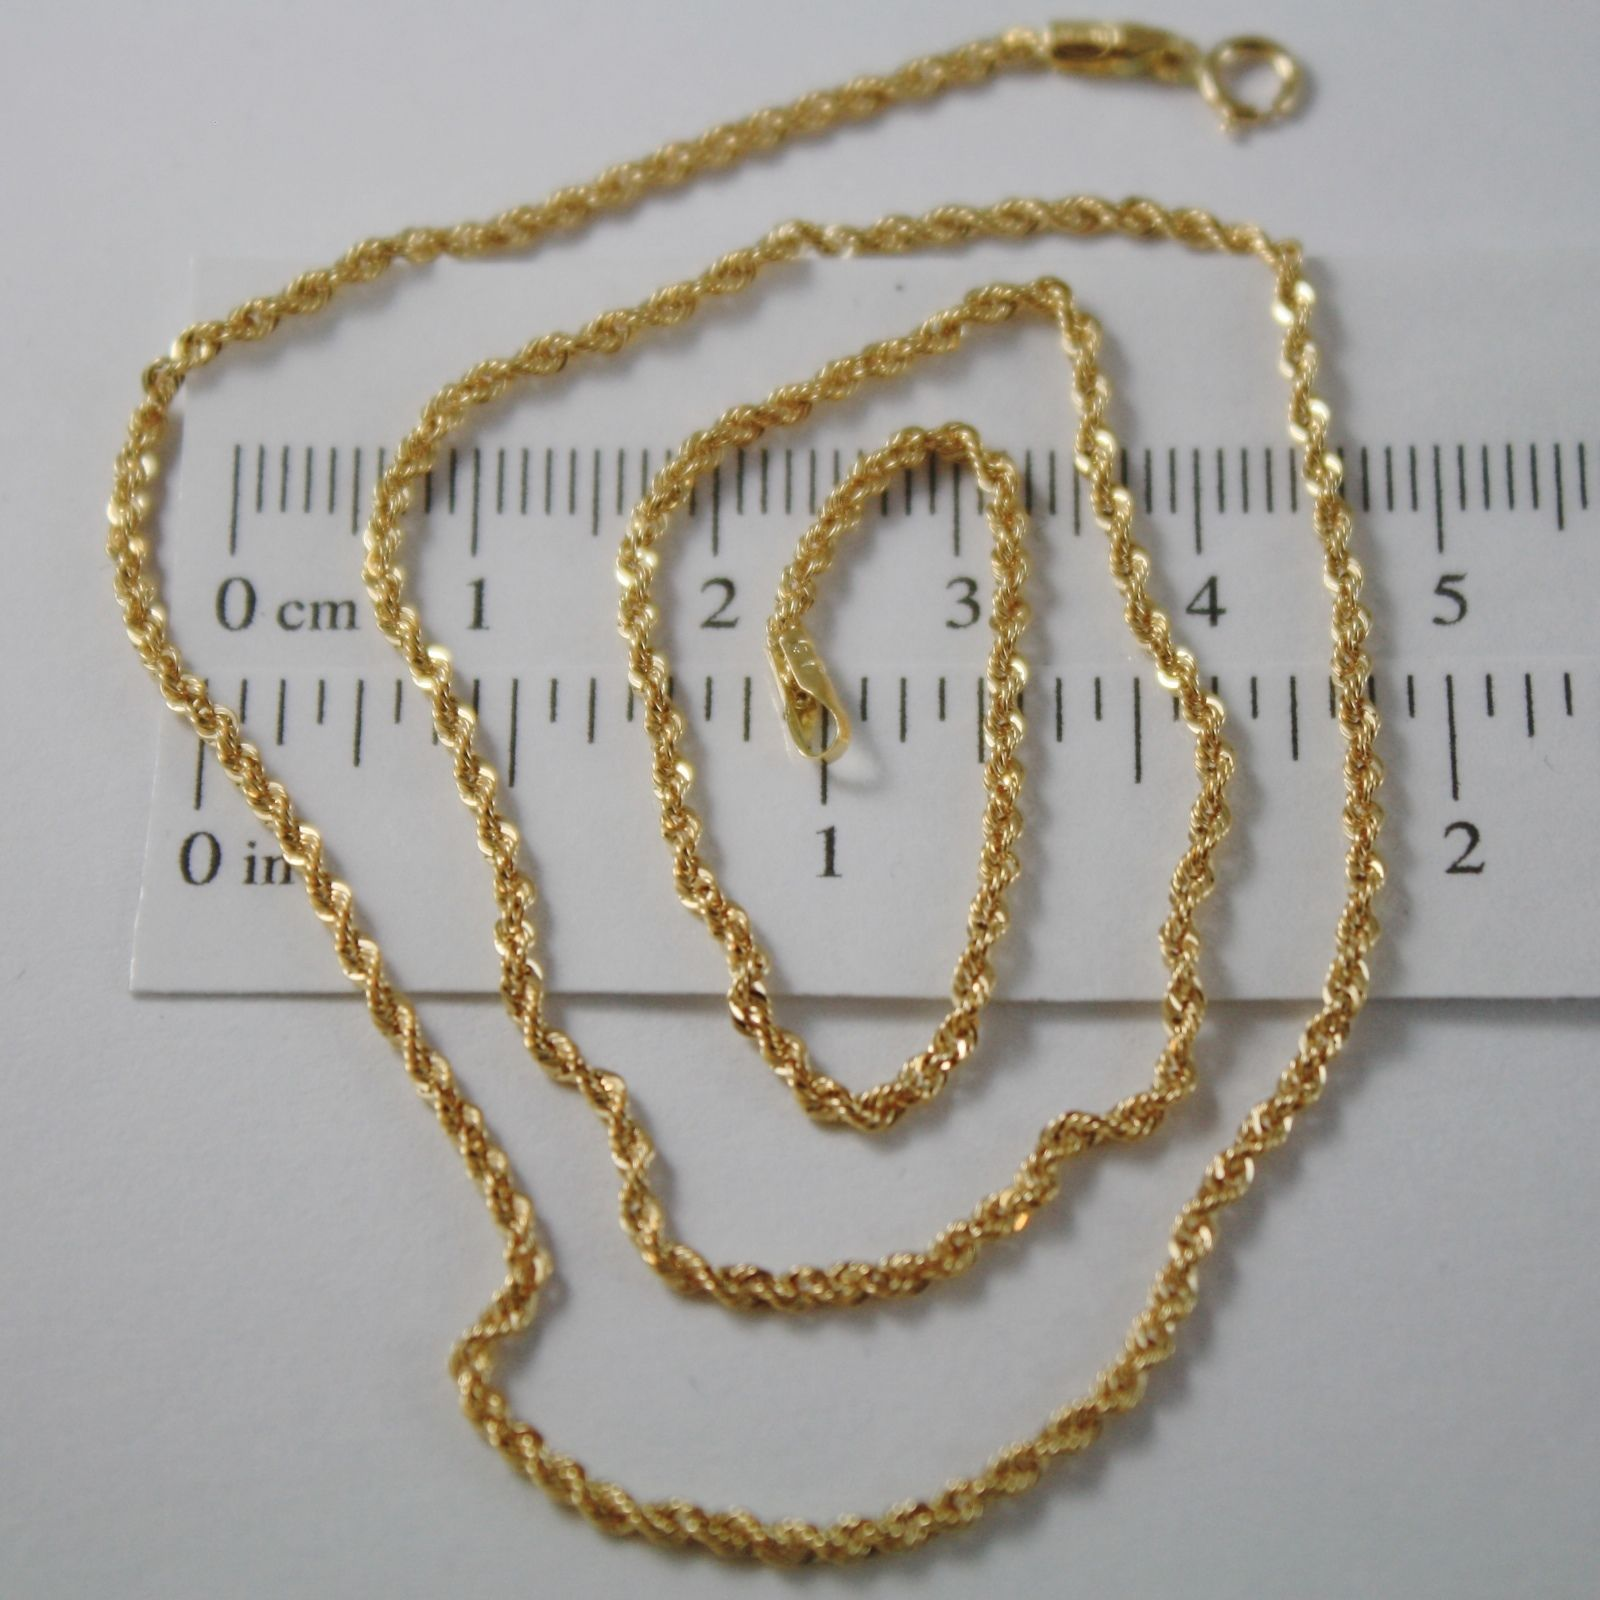 18K YELLOW GOLD CHAIN NECKLACE, BRAID ROPE MESH 28 INCHES, 70 CM, MADE IN ITALY